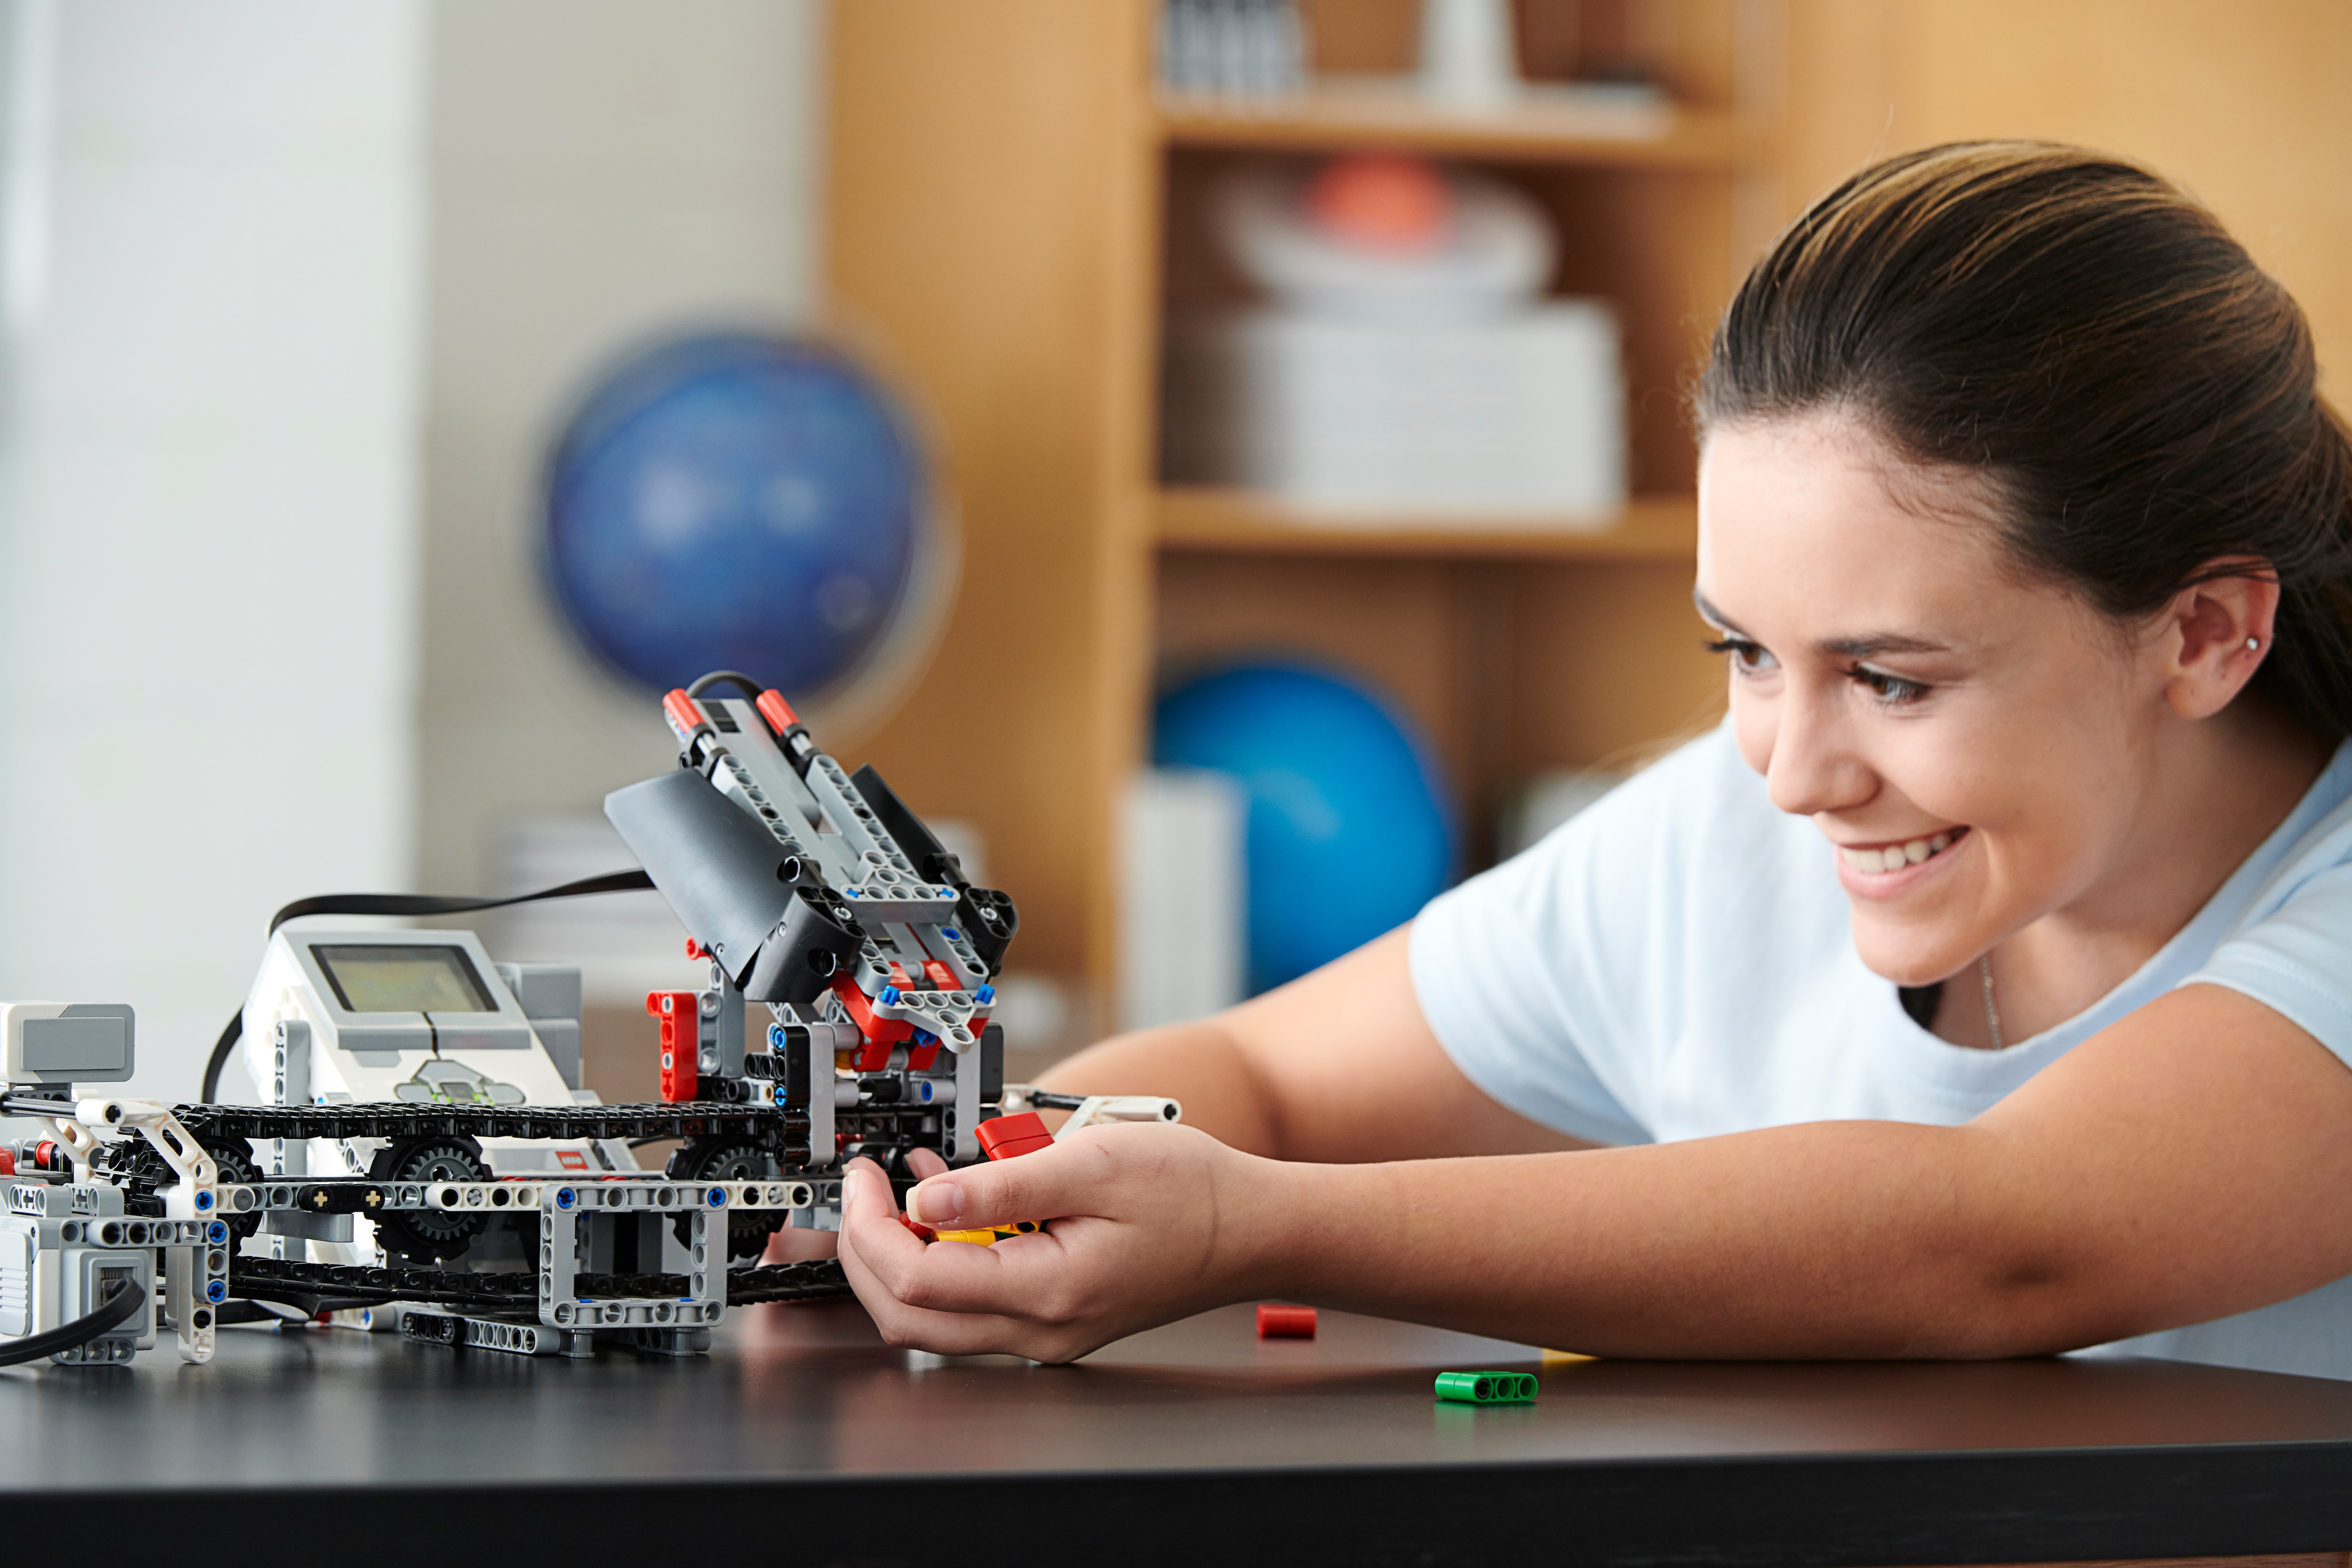 High school student tests the LEGO Education MINDSTORMS EV3 Color Sorter model in class